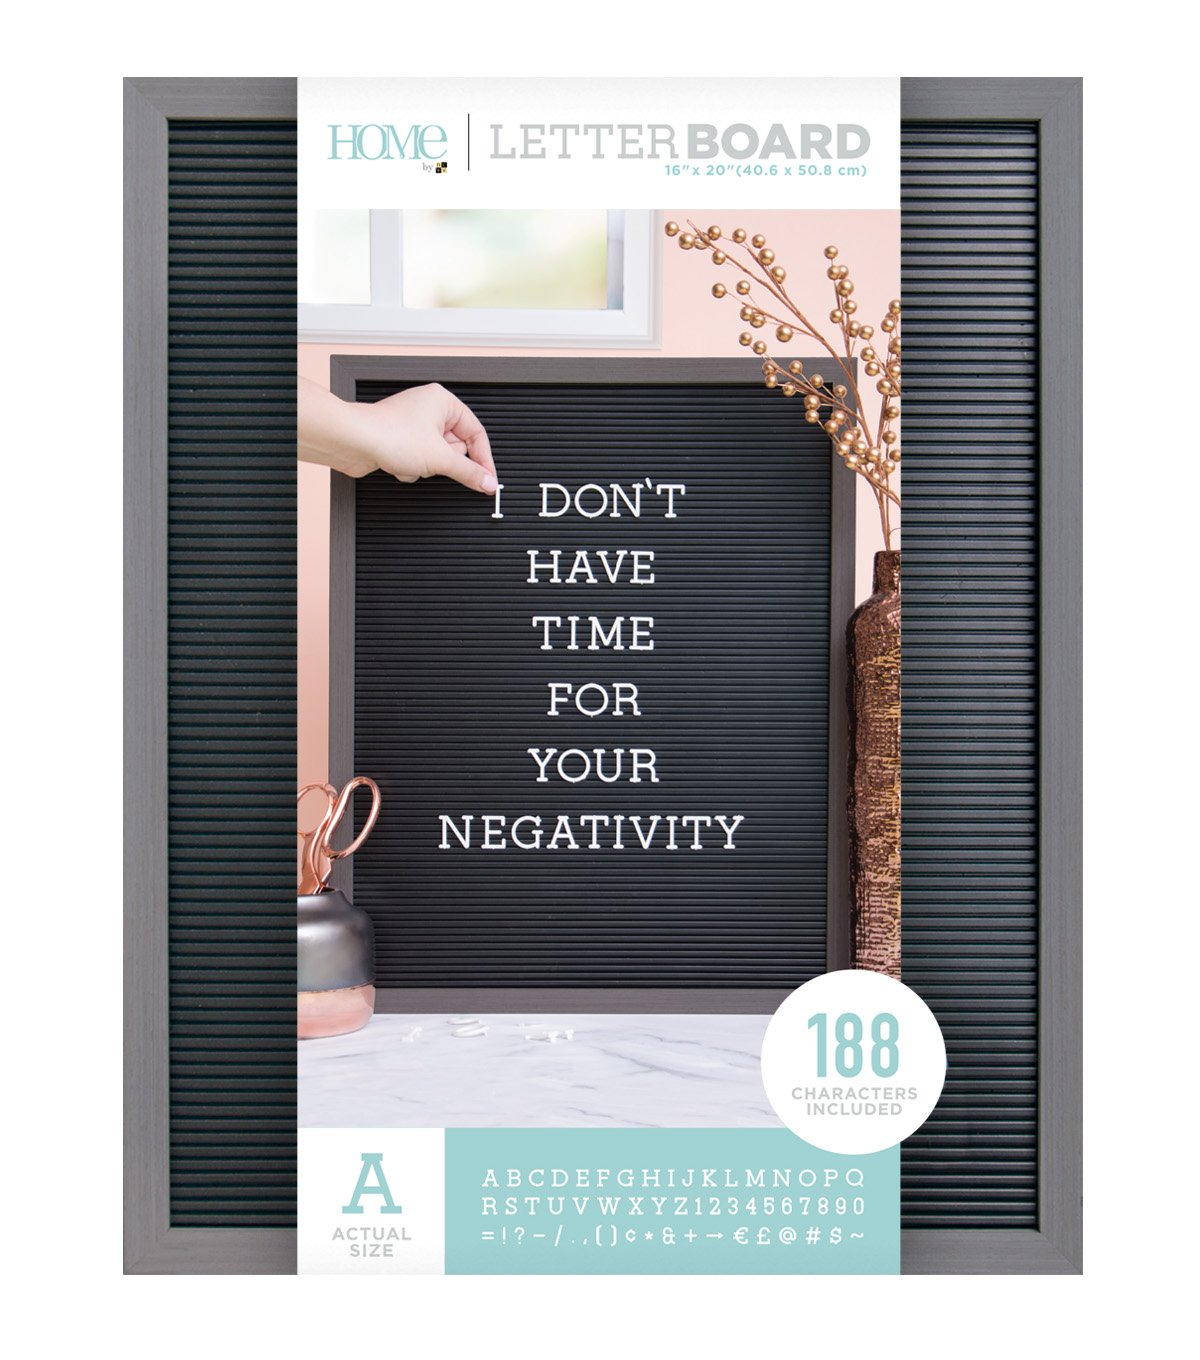 American Crafts 16 x 20 Inch Gray Frame with Black Die Cuts with a View Letterboards, 16 x 20,